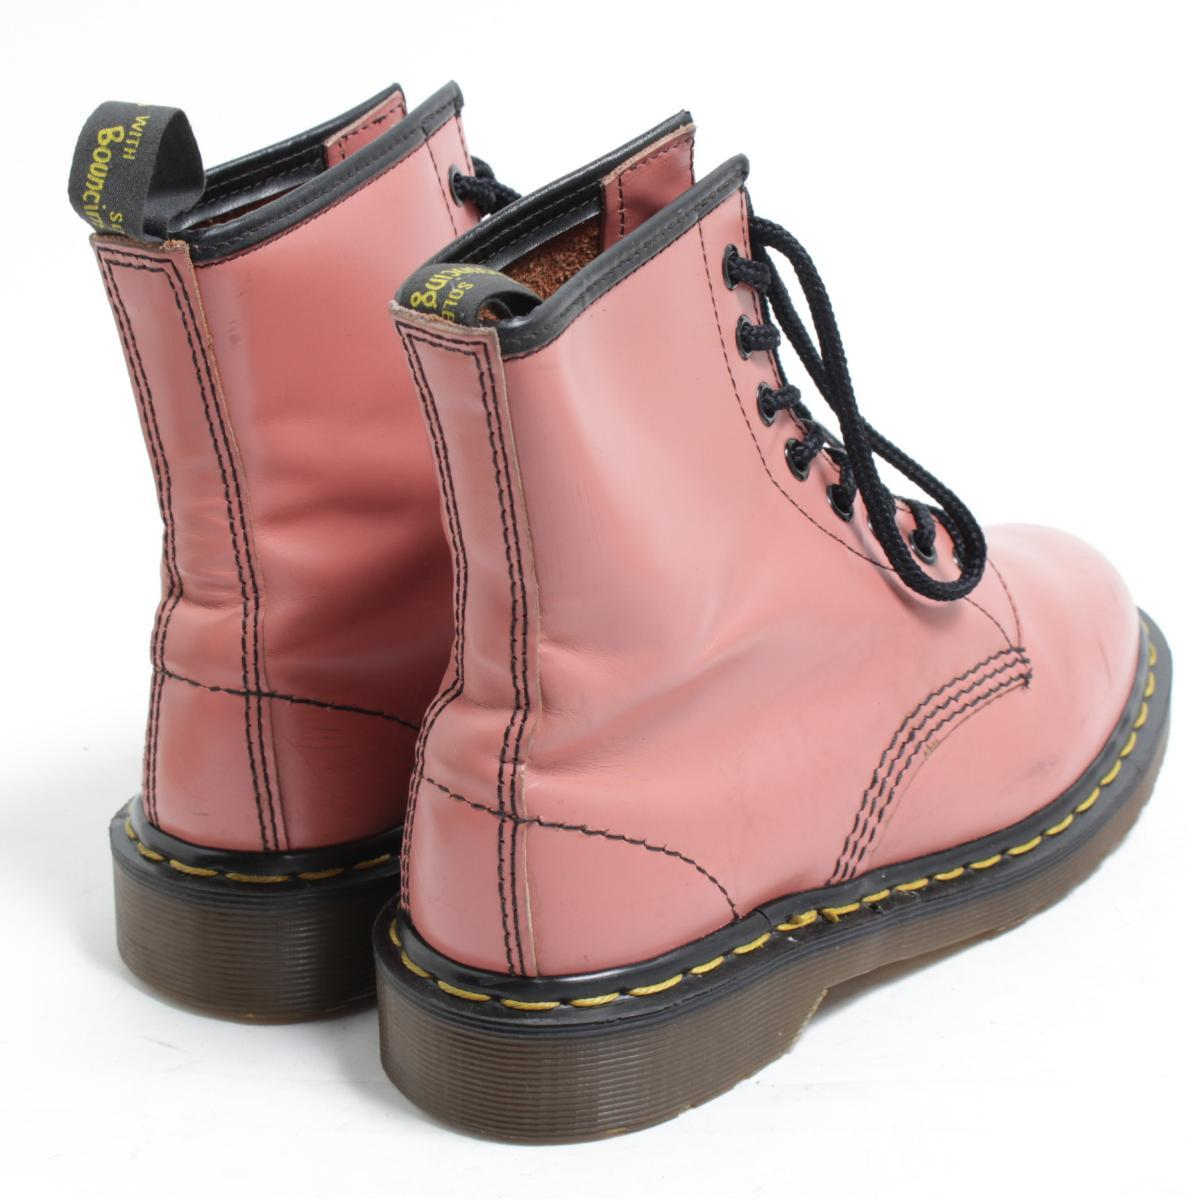 UK5 Lady's 23.5cm /bom9628 made in the doctor Martin Dr.Martens 8 hall boots U.K.